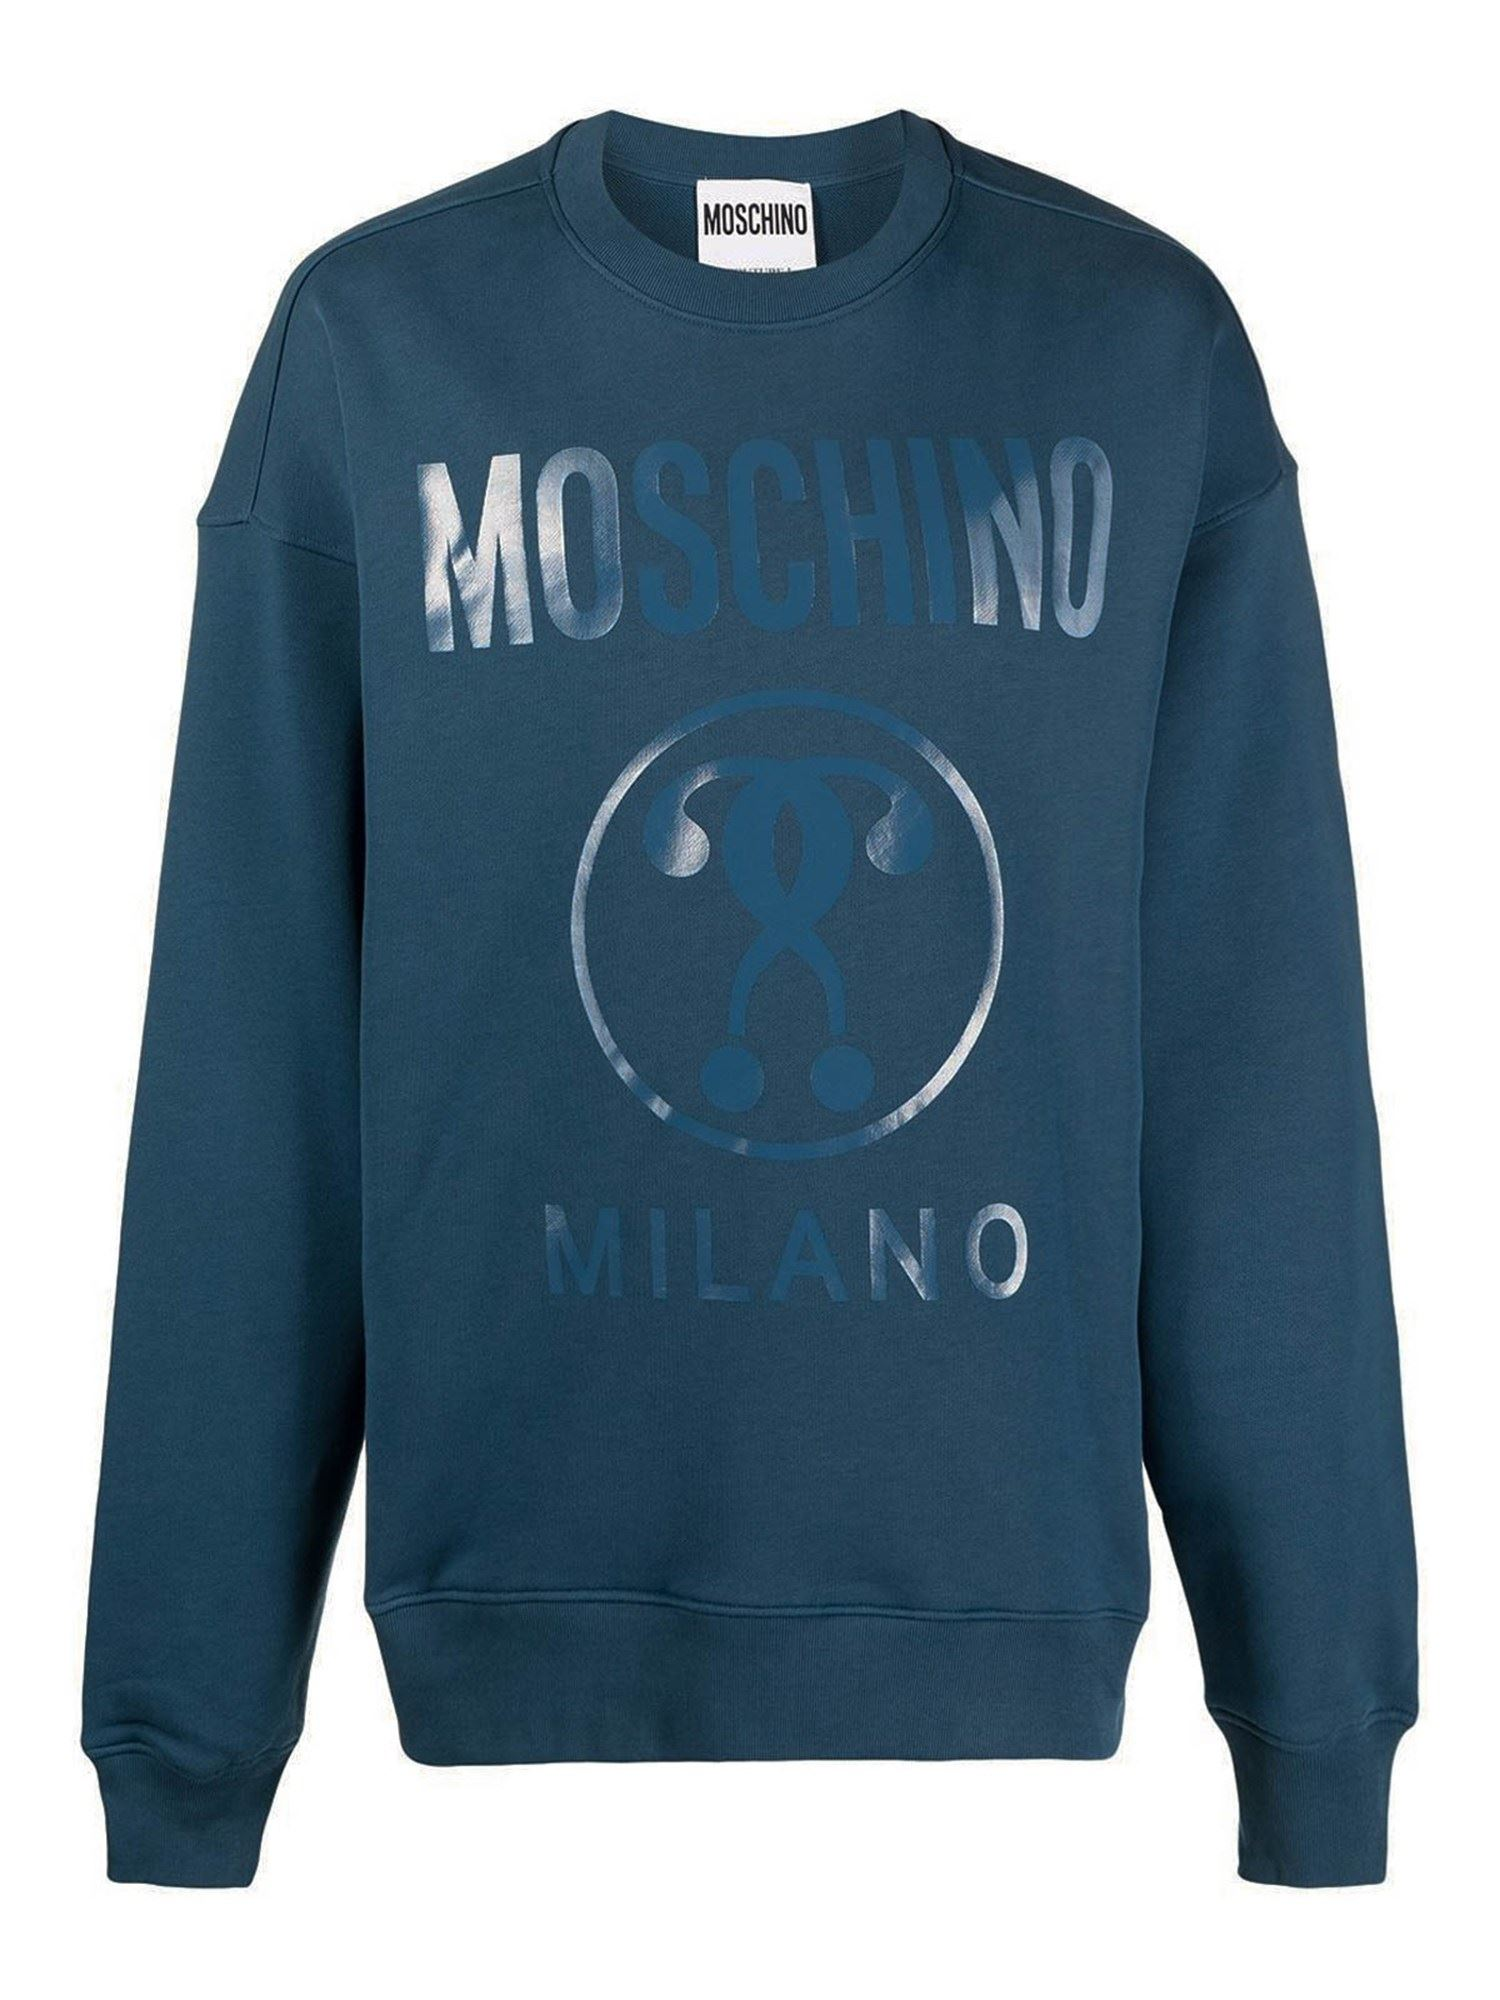 MOSCHINO DOUBLE QUESTION MARK SWEATSHIRT IN BLUE